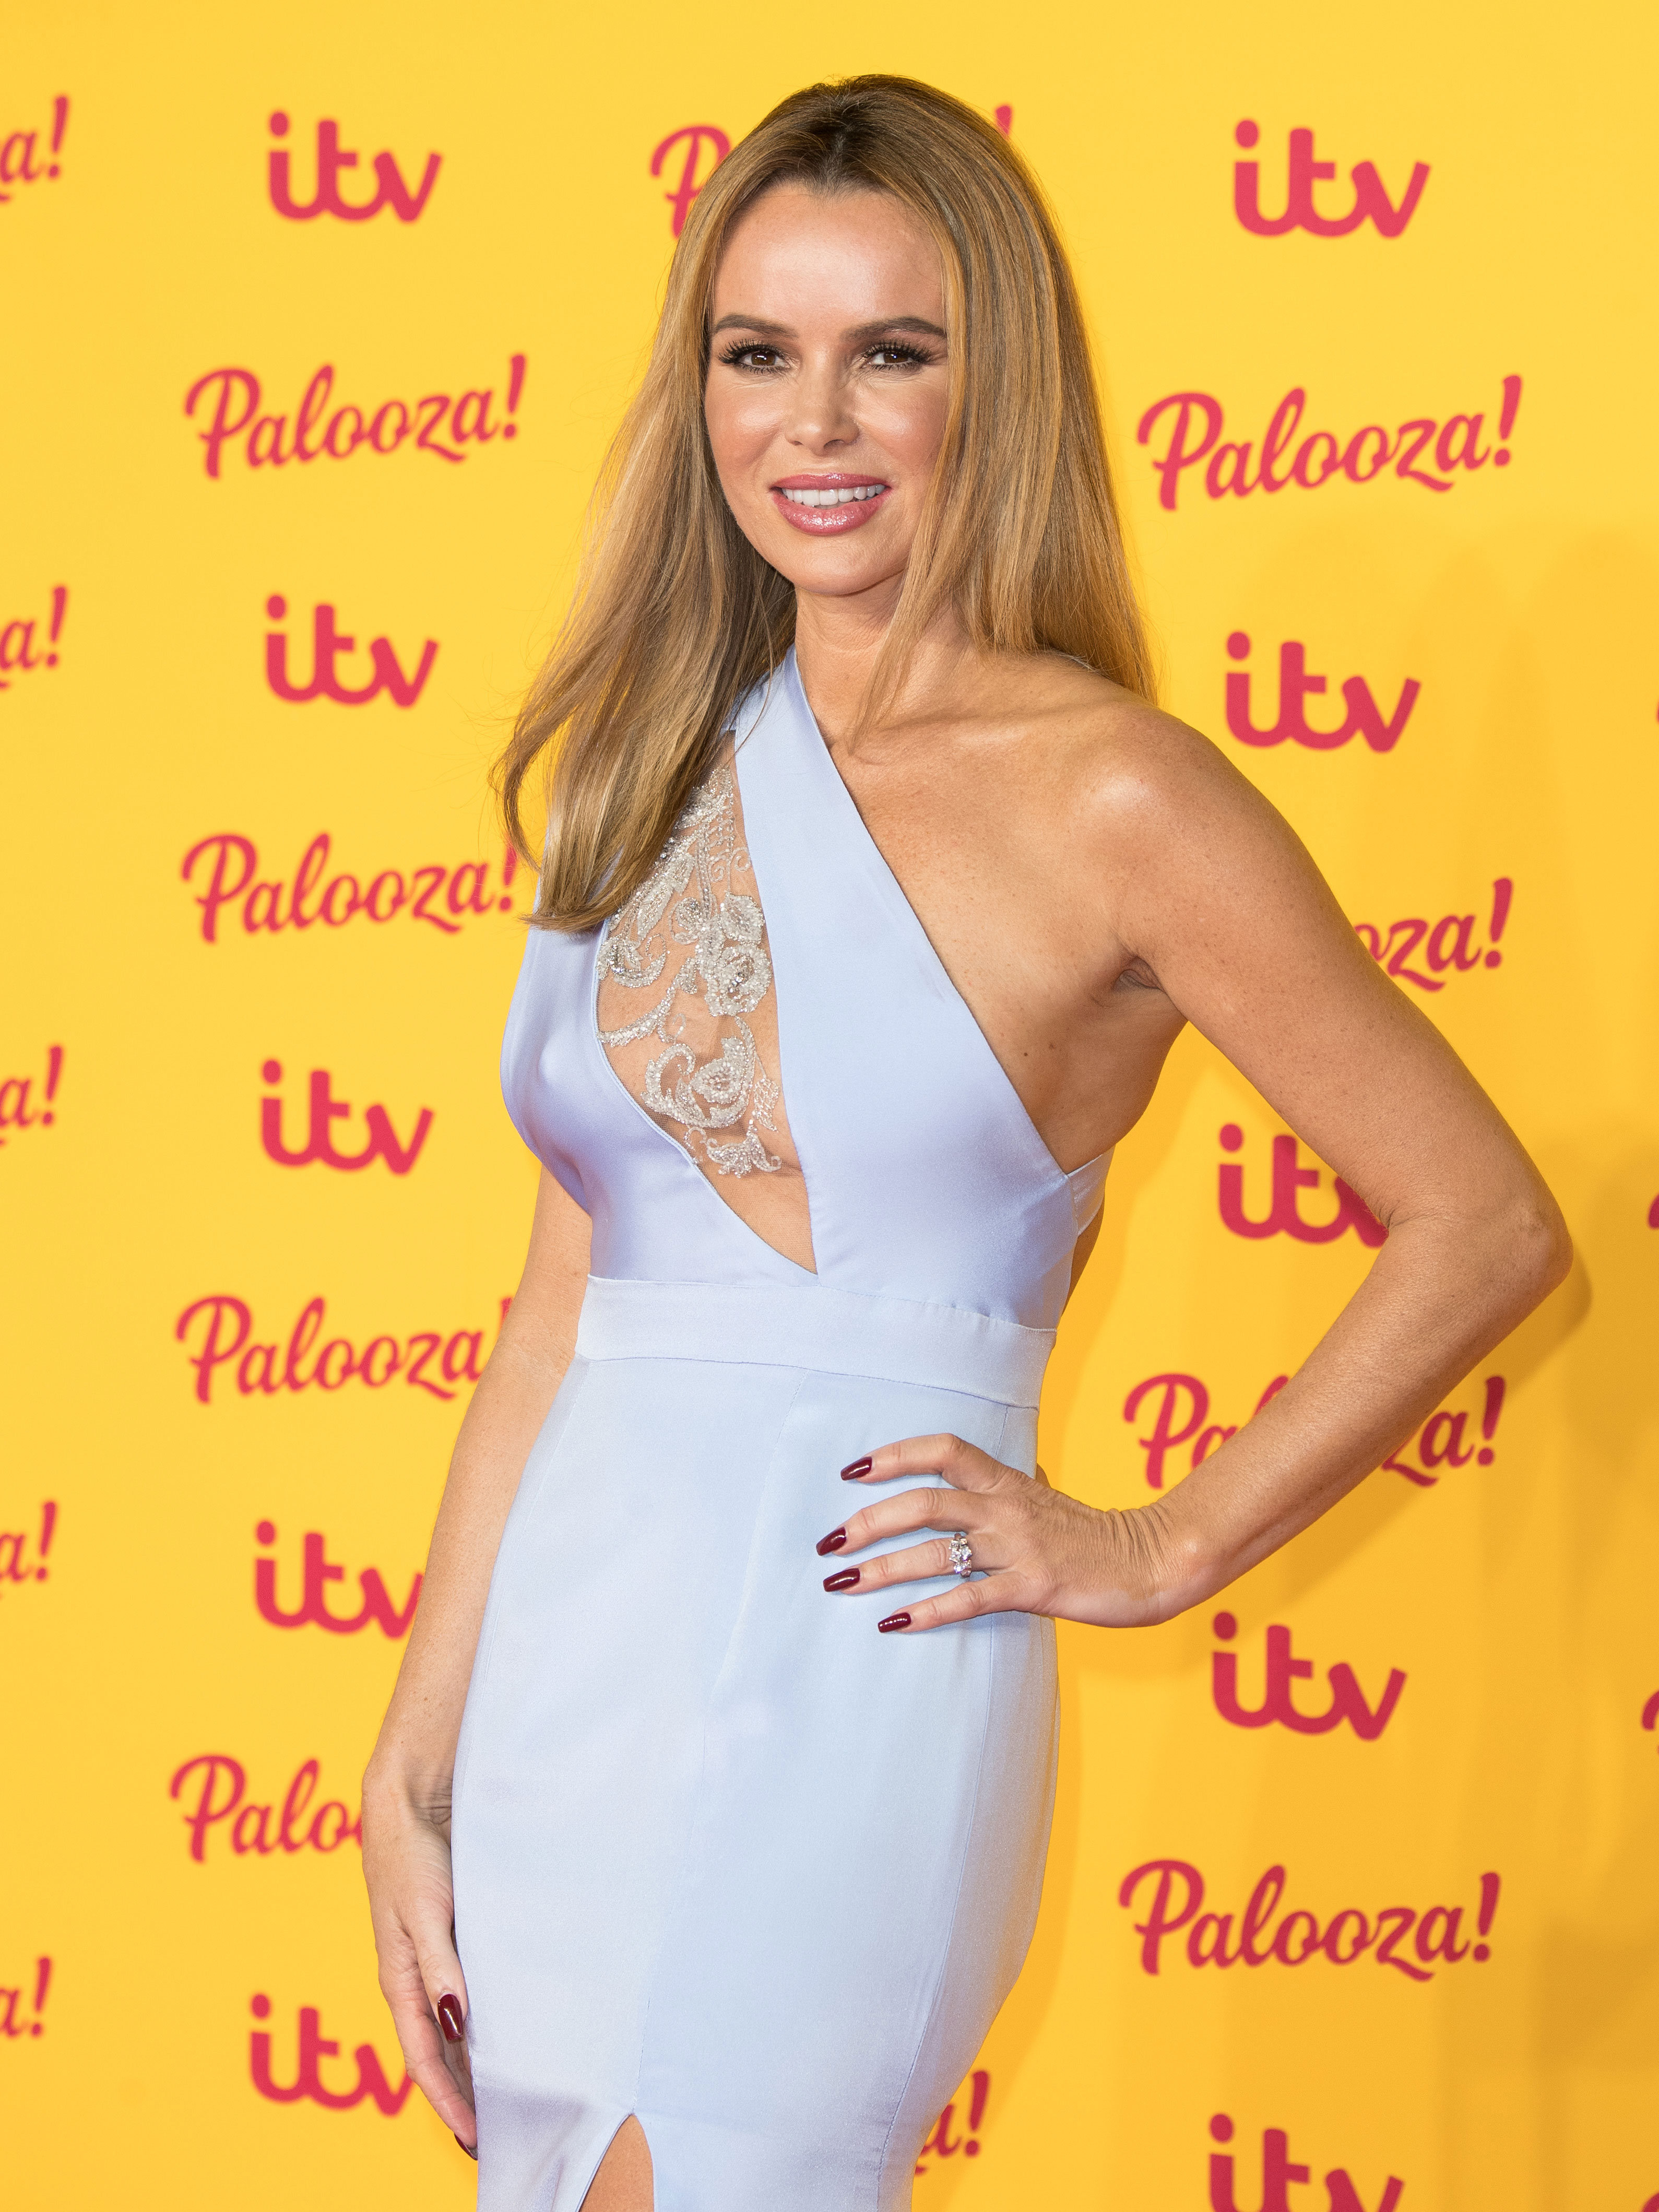 Amanda Holden admits she loves when people talk about her 'tired old breasts' as she hits back at revealing outfit criticism